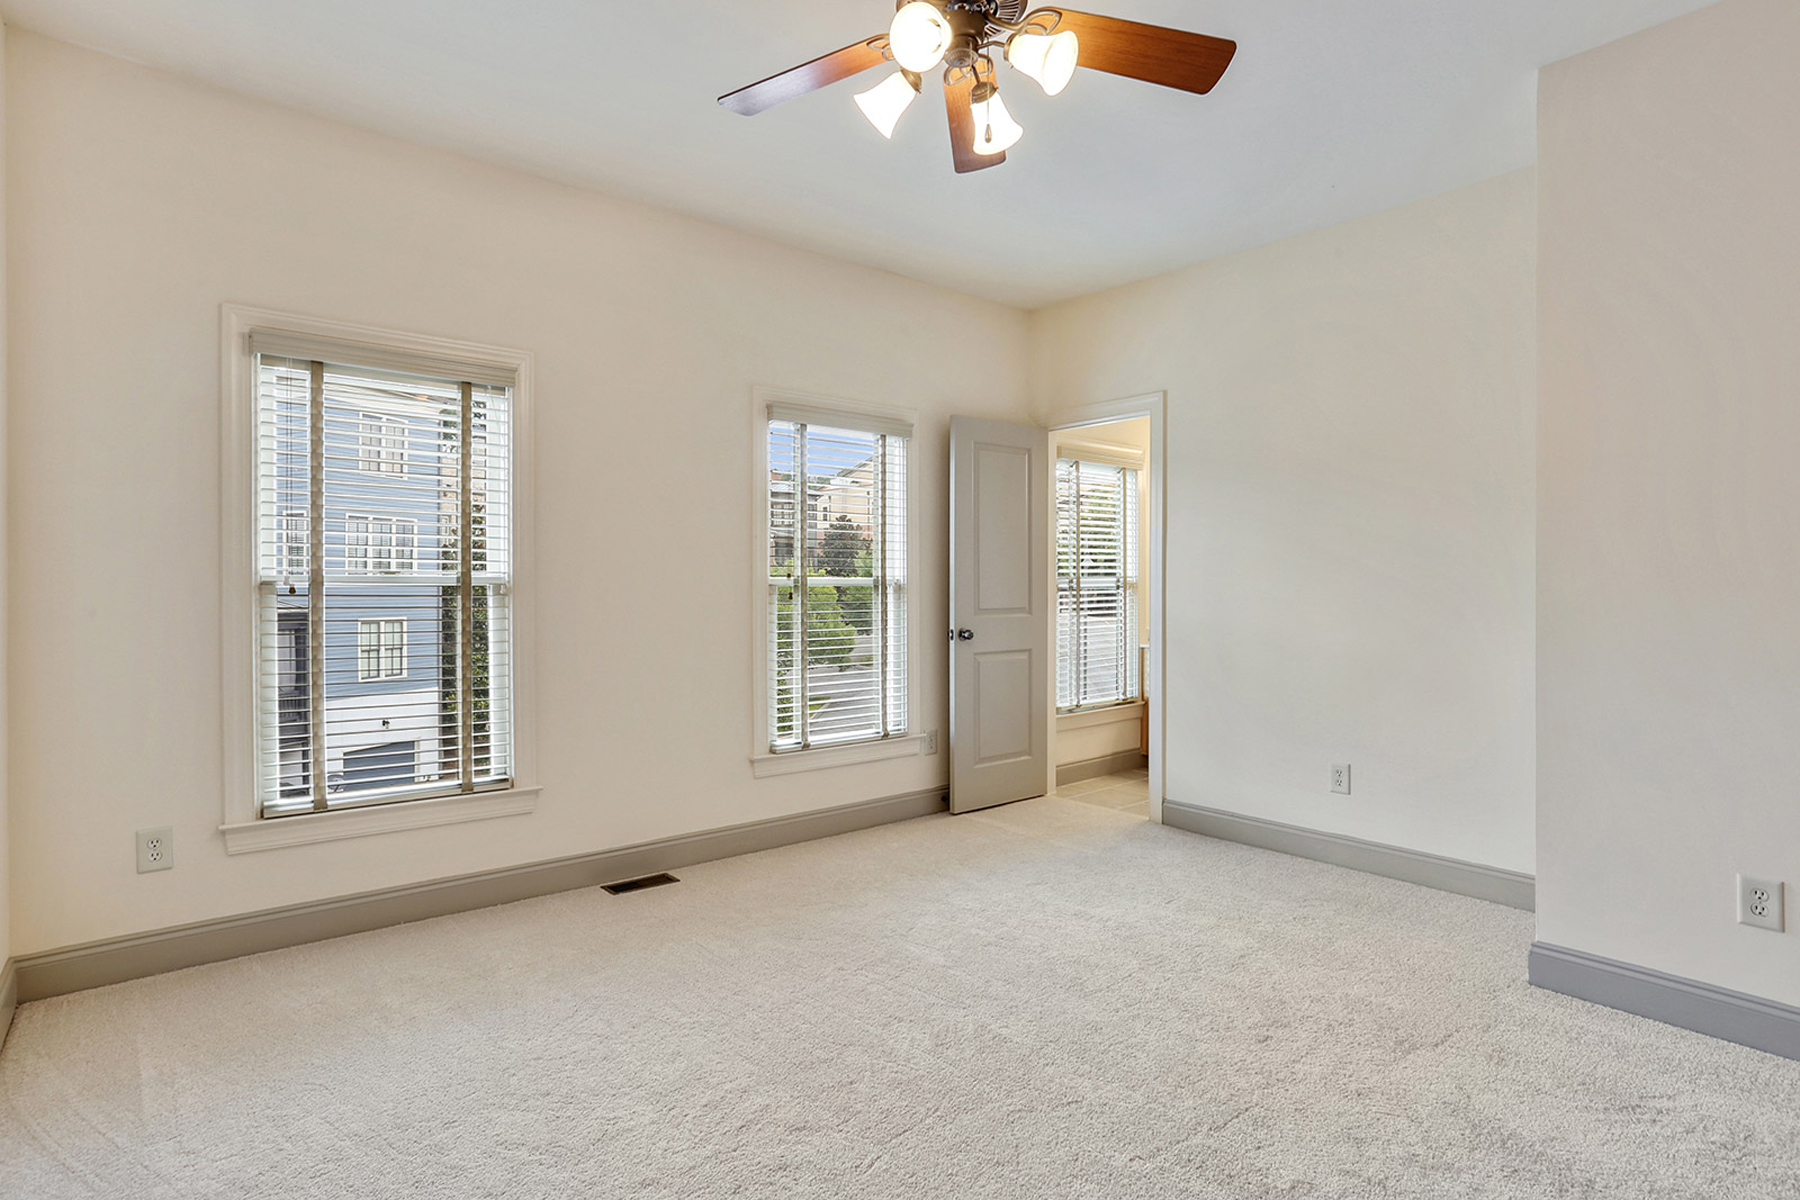 Additional photo for property listing at Beautiful Townhome Overlooking Courtyard 5986 Bond Street Cumming, Georgien 30040 Usa